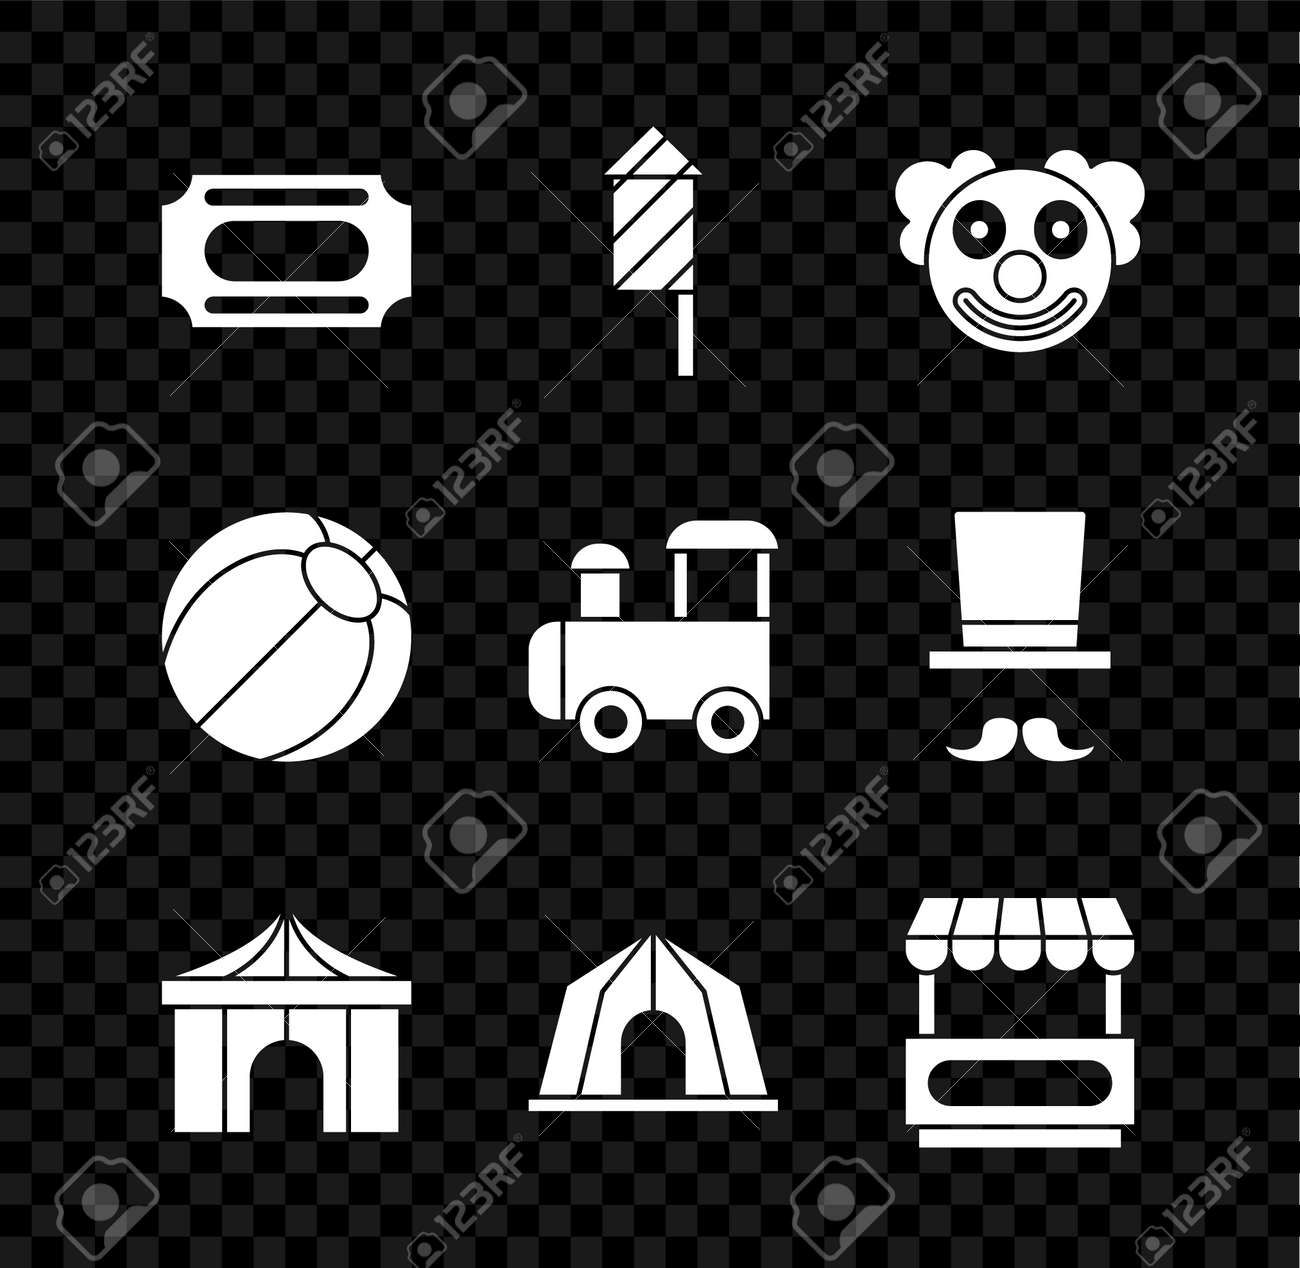 Set Circus ticket, Firework rocket, Clown head, tent, Fast street food cart, Beach ball and Toy train icon. Vector - 173396192